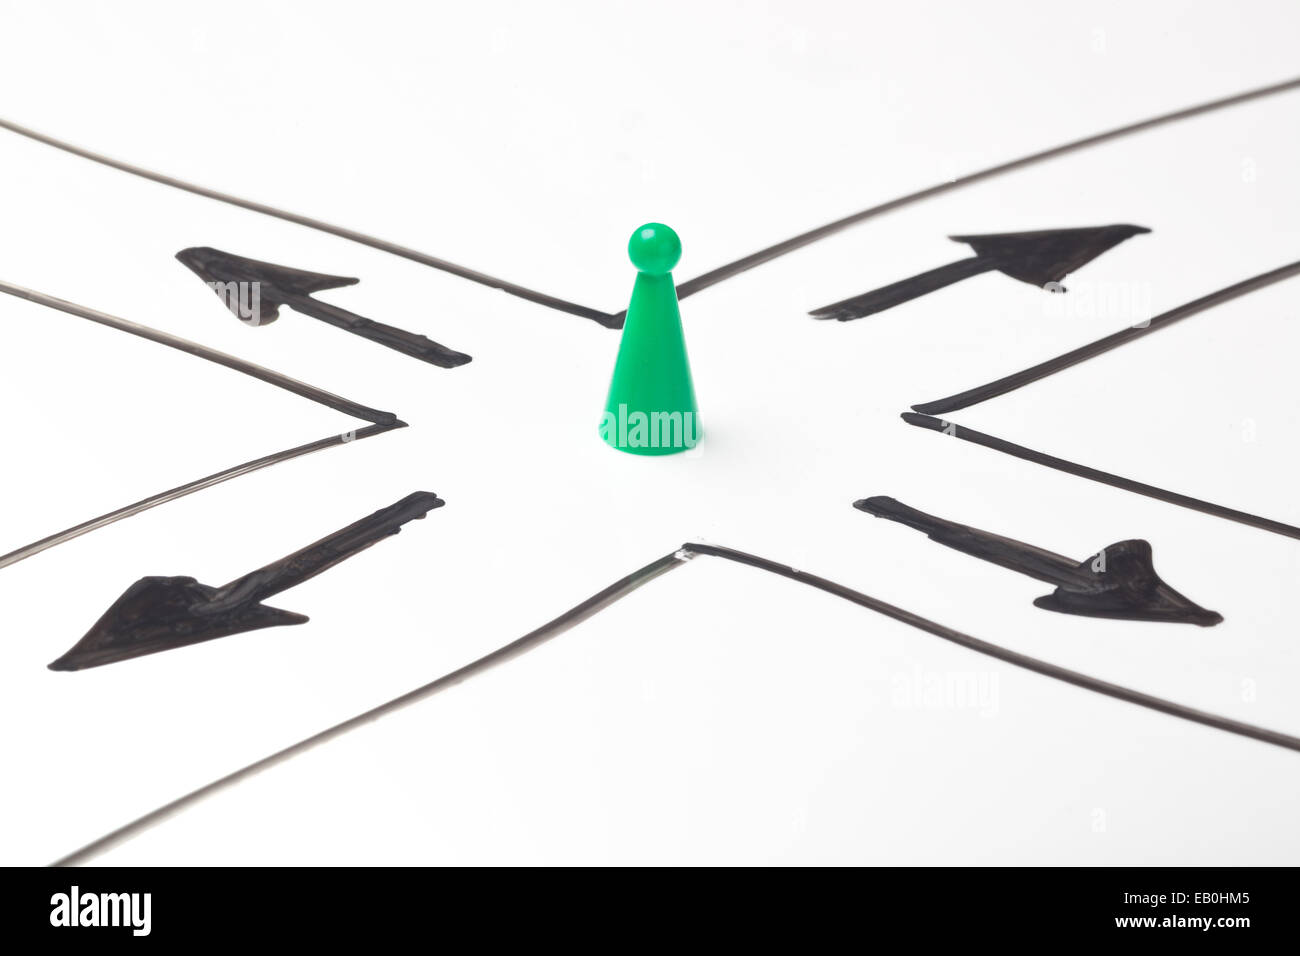 Figurine at a crossroad with arrows pointing at different directions - Stock Image